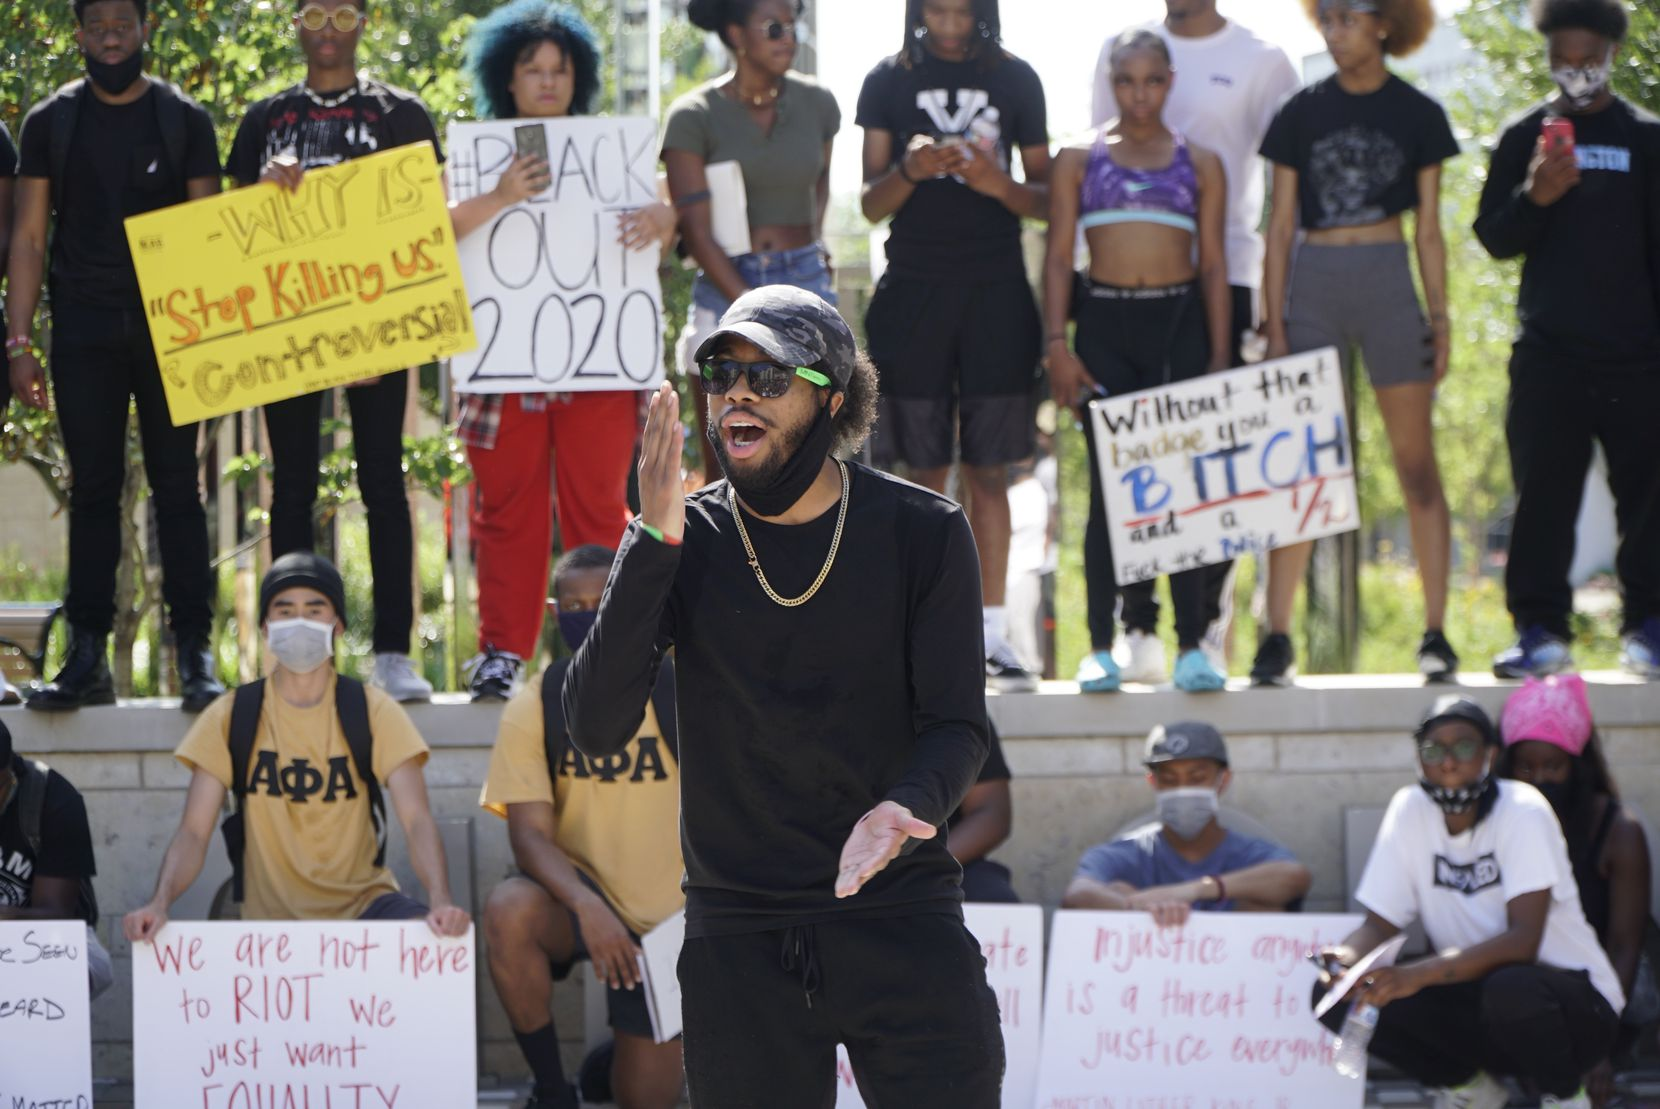 Jibri Burgess speaks to protestors during a march in Arlington, Texas on Tuesday, June 2, 2020. The protest was to show solidarity in the midst of the latest killing of an African American man by police in Minnesota.